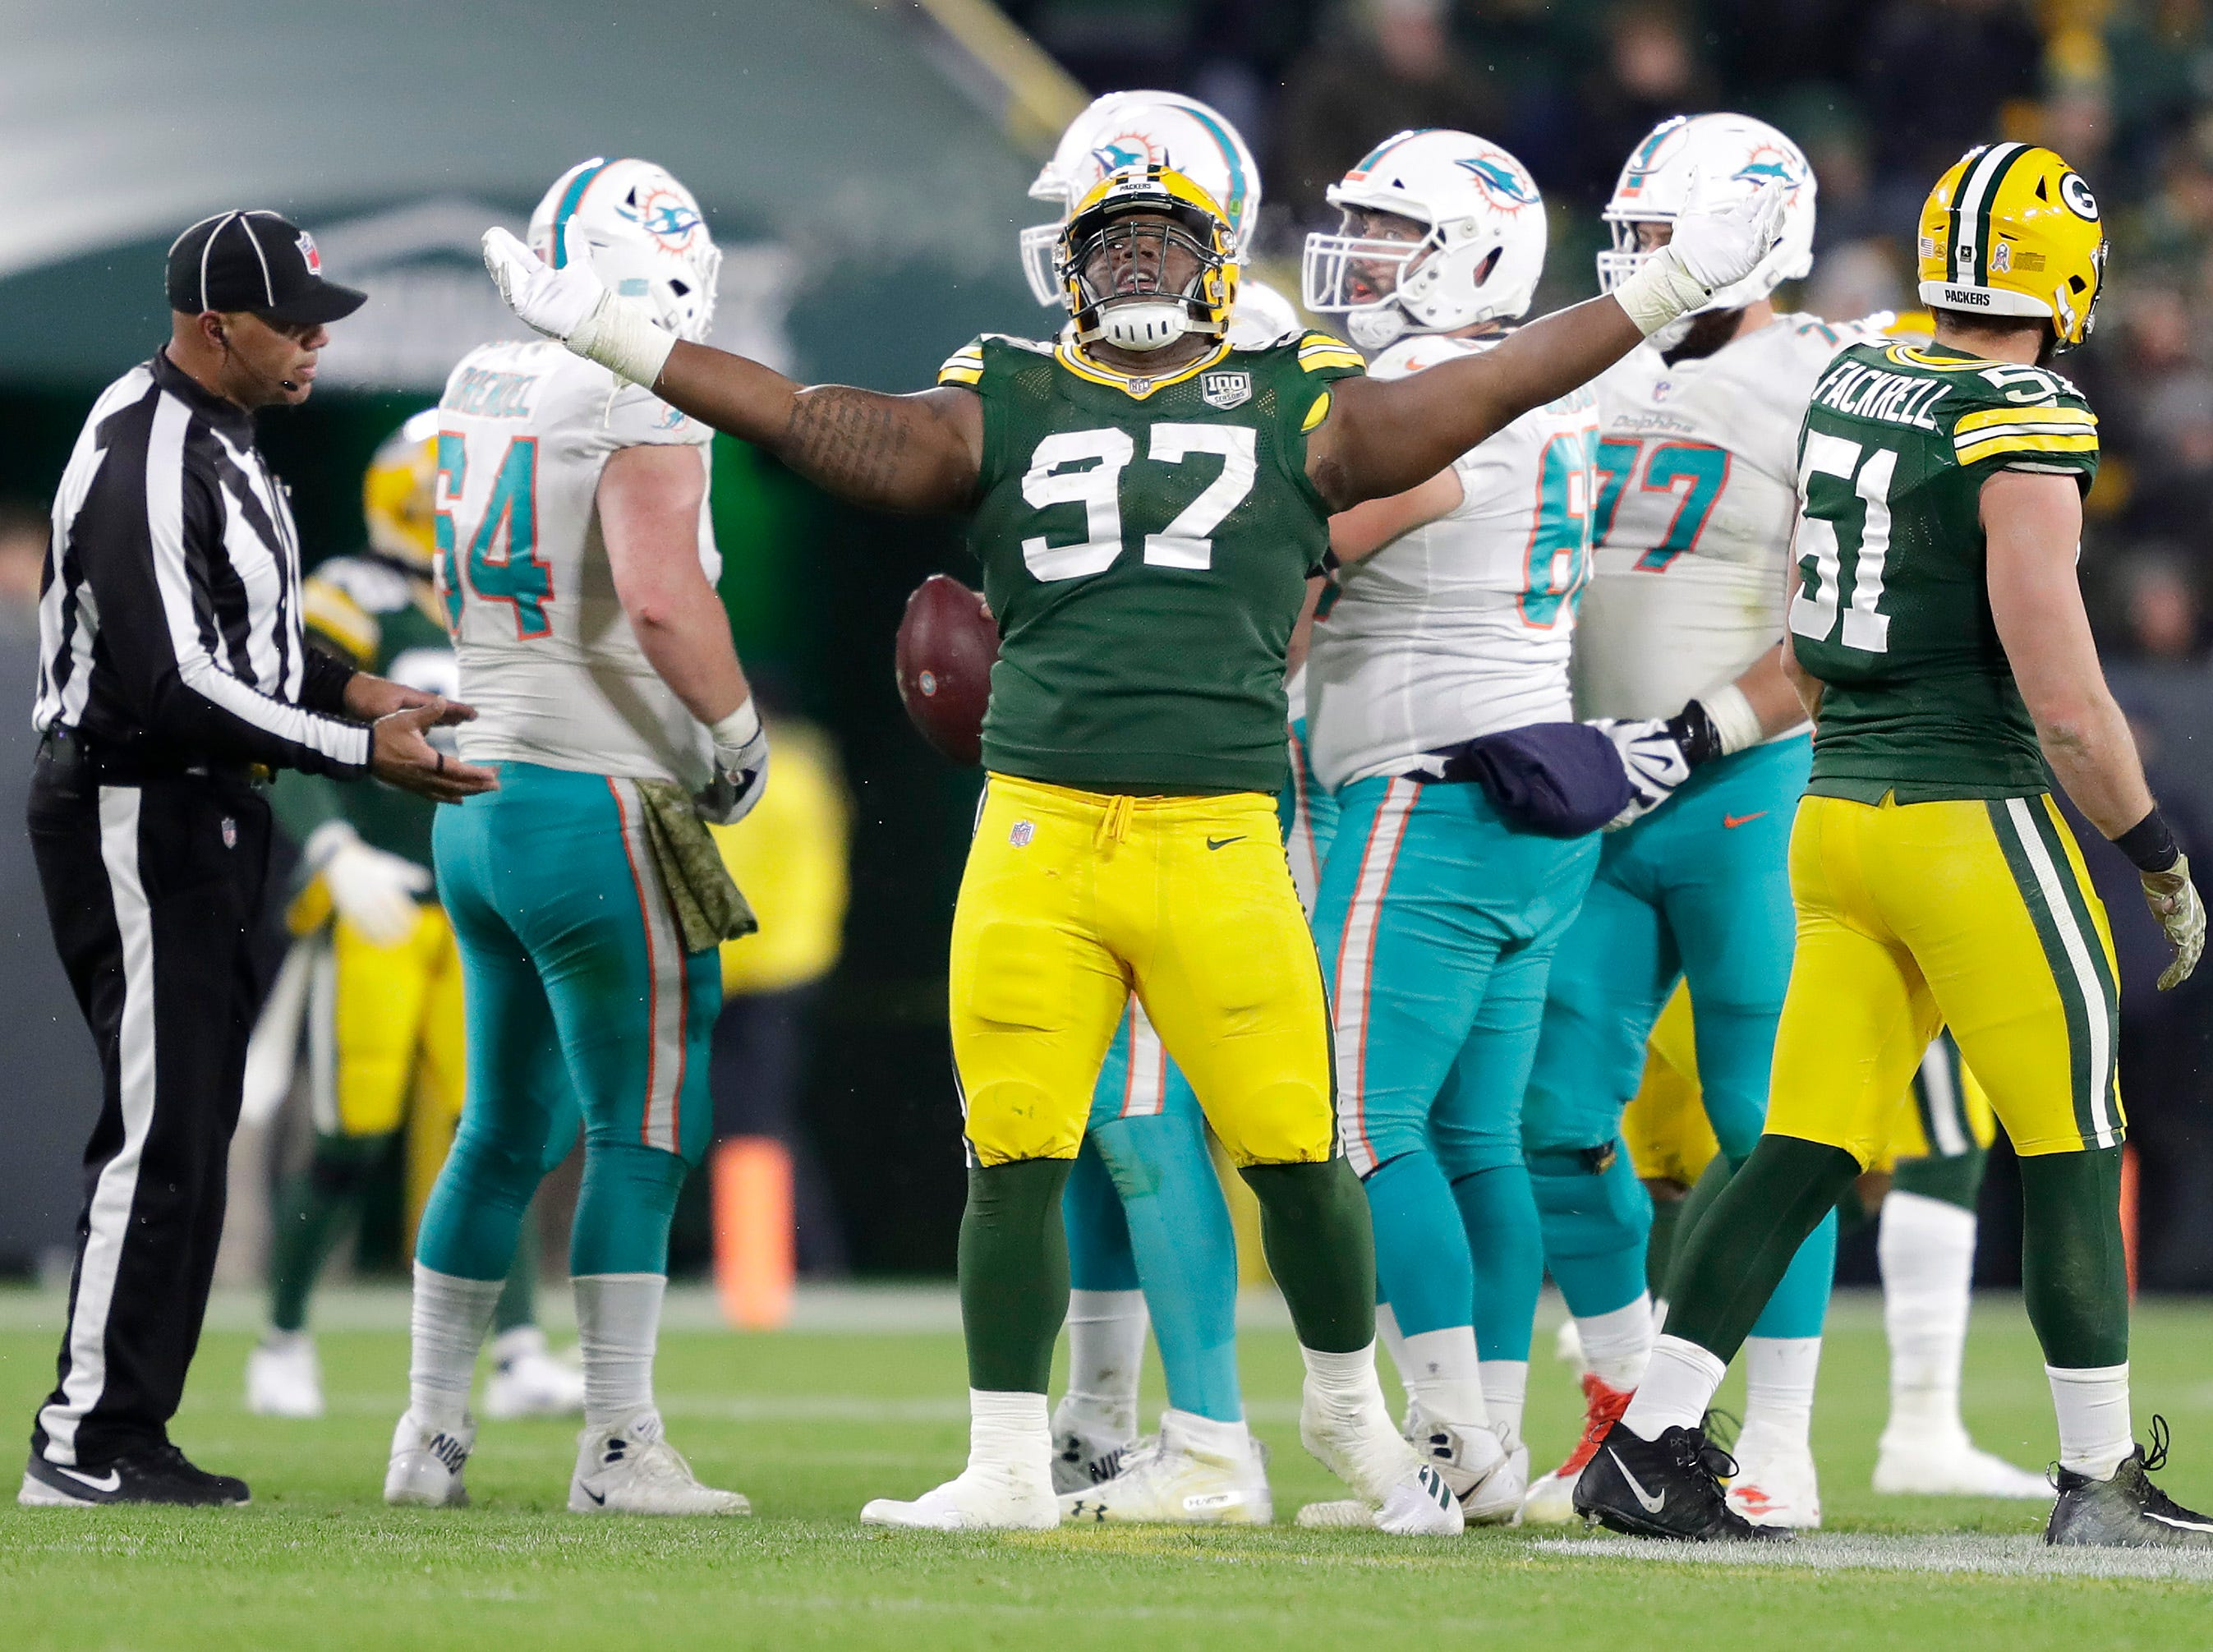 Green Bay Packers nose tackle Kenny Clark celebrates a sack against the Miami Dolphins during their football game on Sunday, November 11, 2018, at Lambeau Field in Green Bay, Wis.